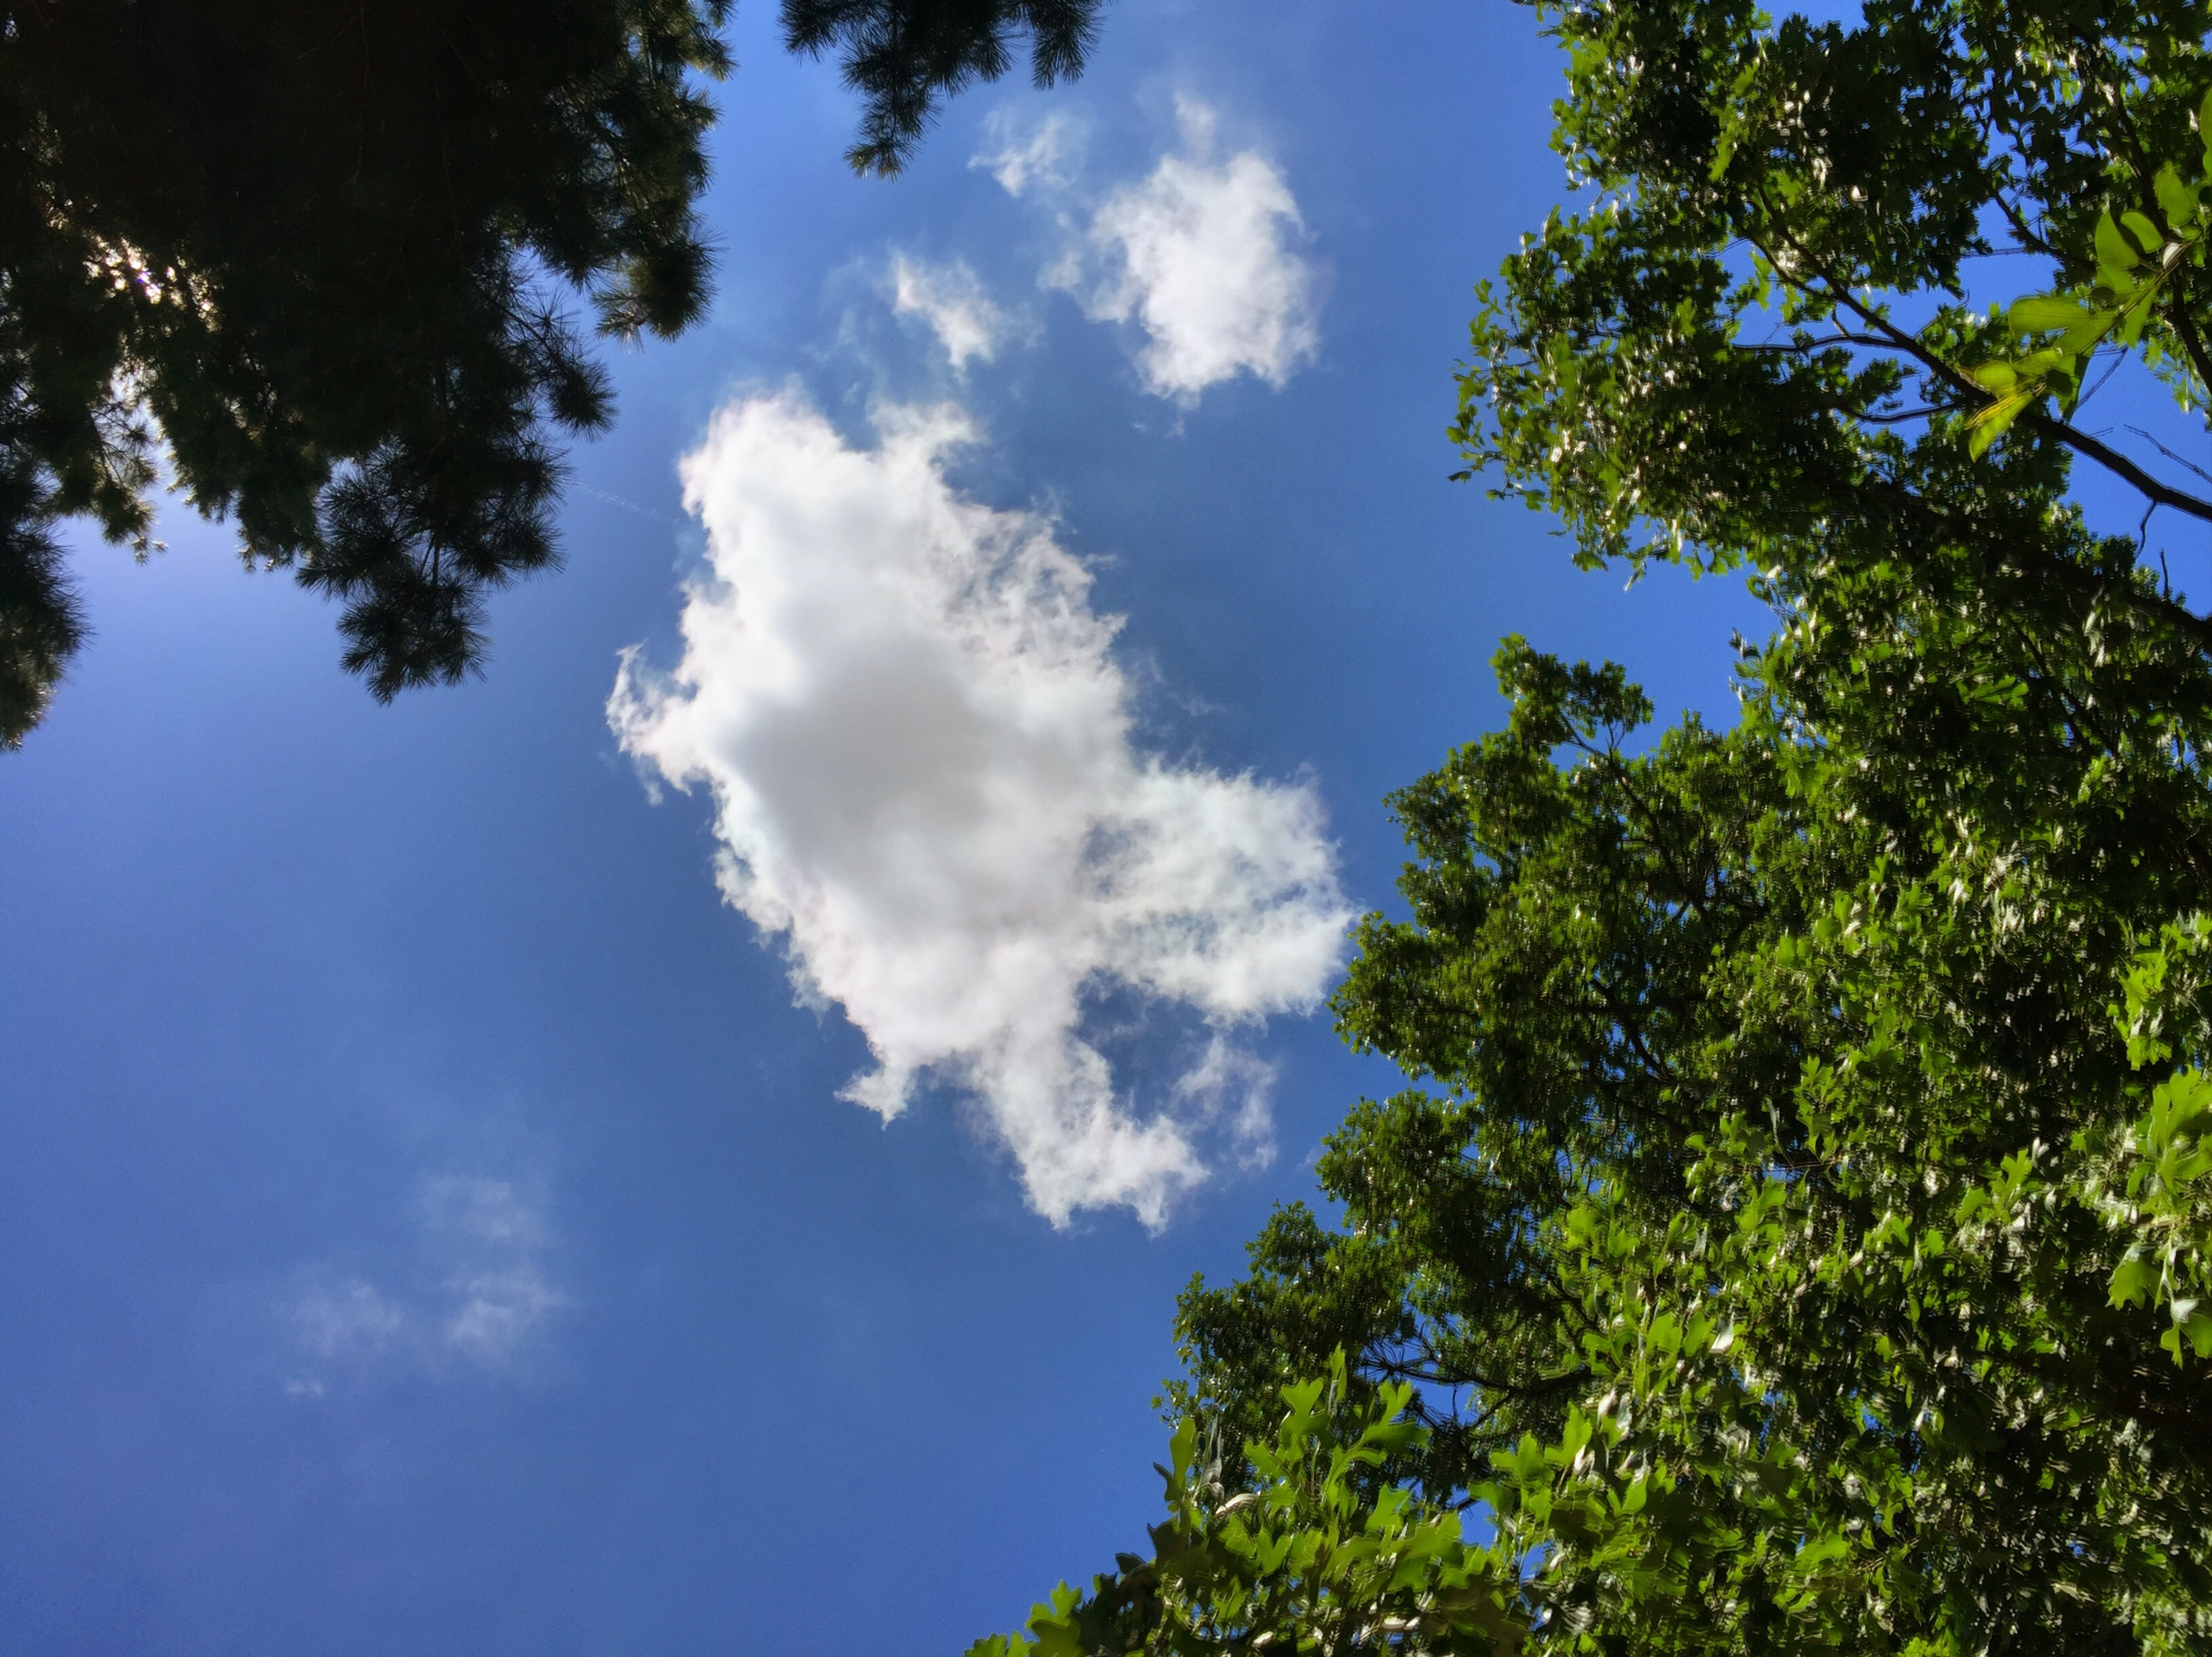 The clouds seem happiest in June